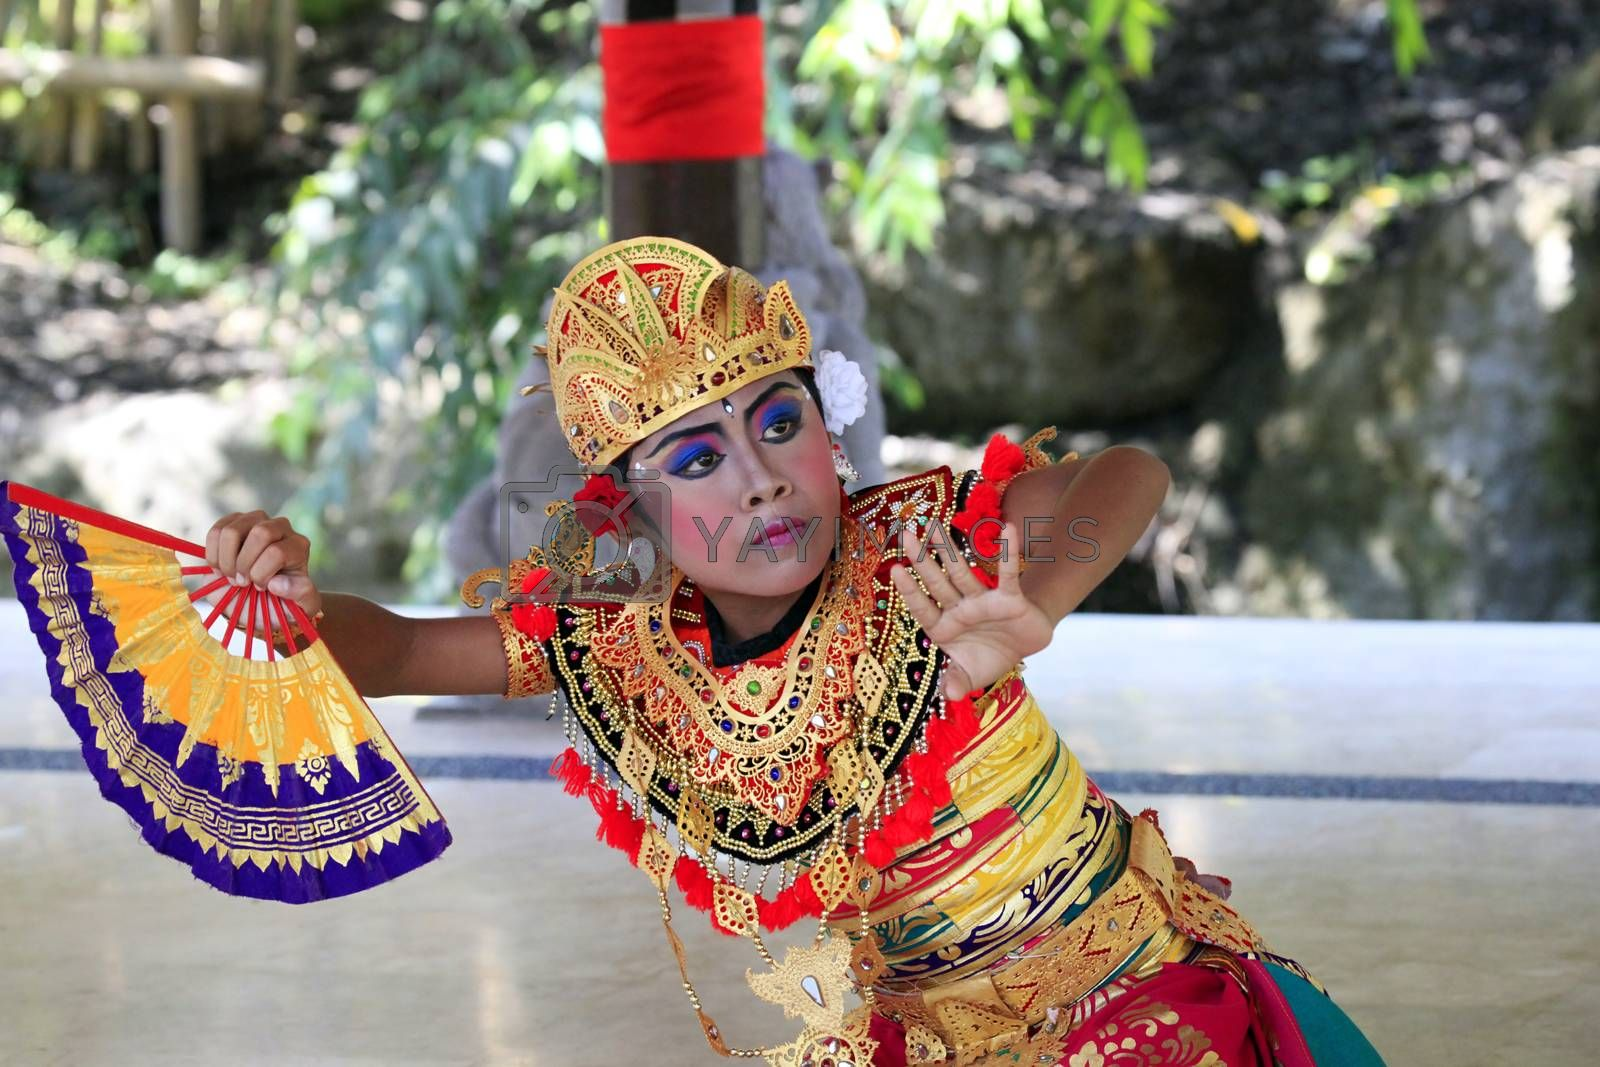 Bali, Indonesia - July 04, 2010: Portrait of dancing boy, ages 10 years old, in national clothes. Traditional daily representation in safari - park to Bali 4 July 2010, Indonesia